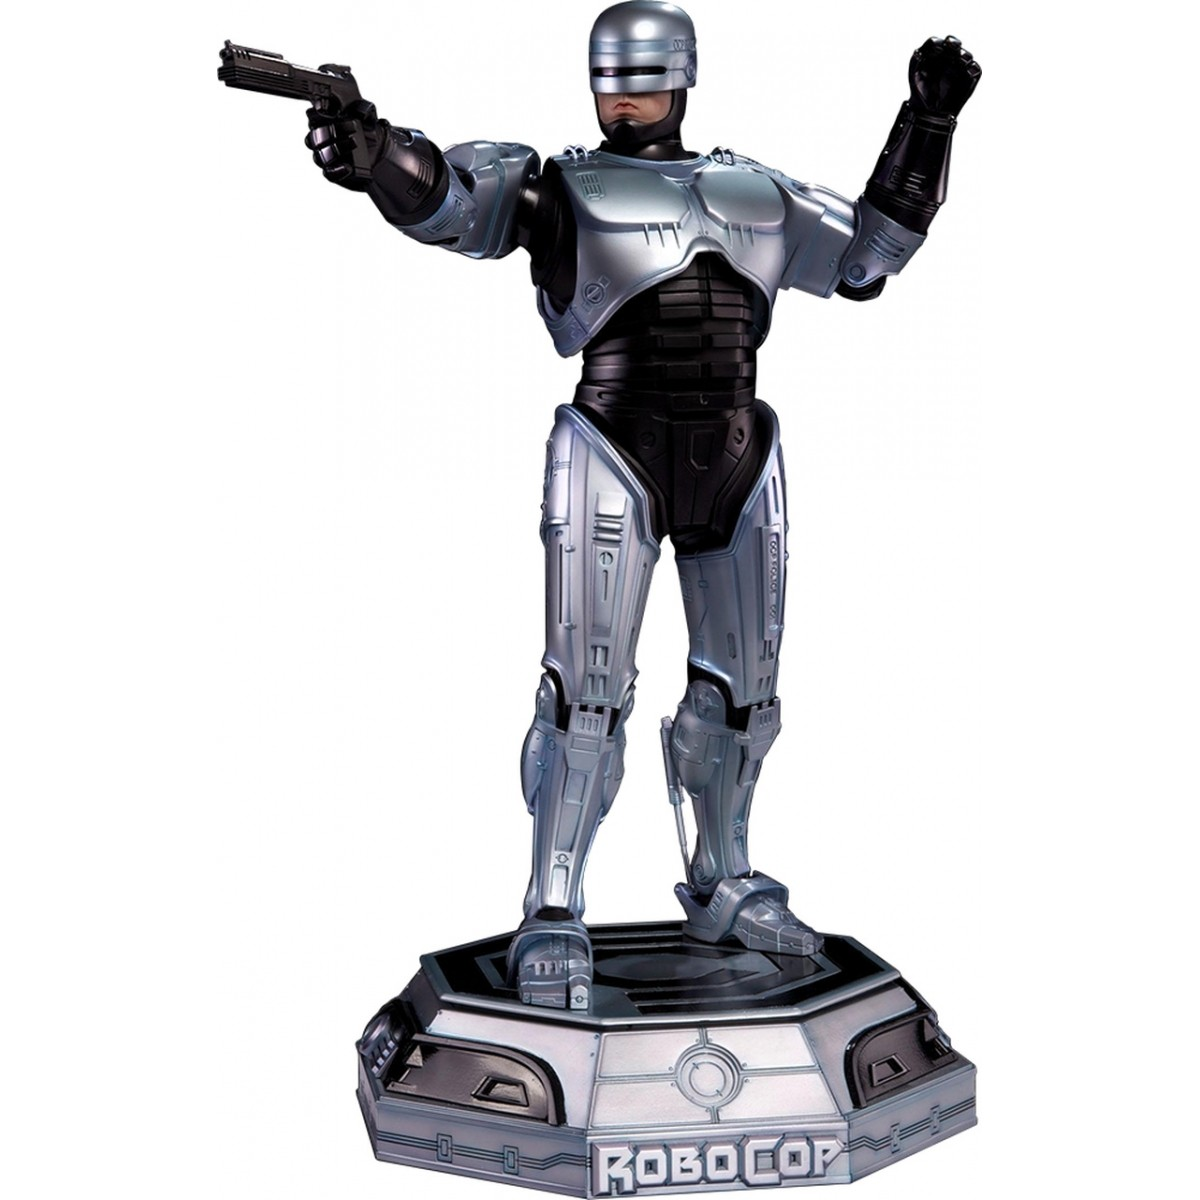 Estátua Robocop Escala 1/4 - Pop Culture Shock